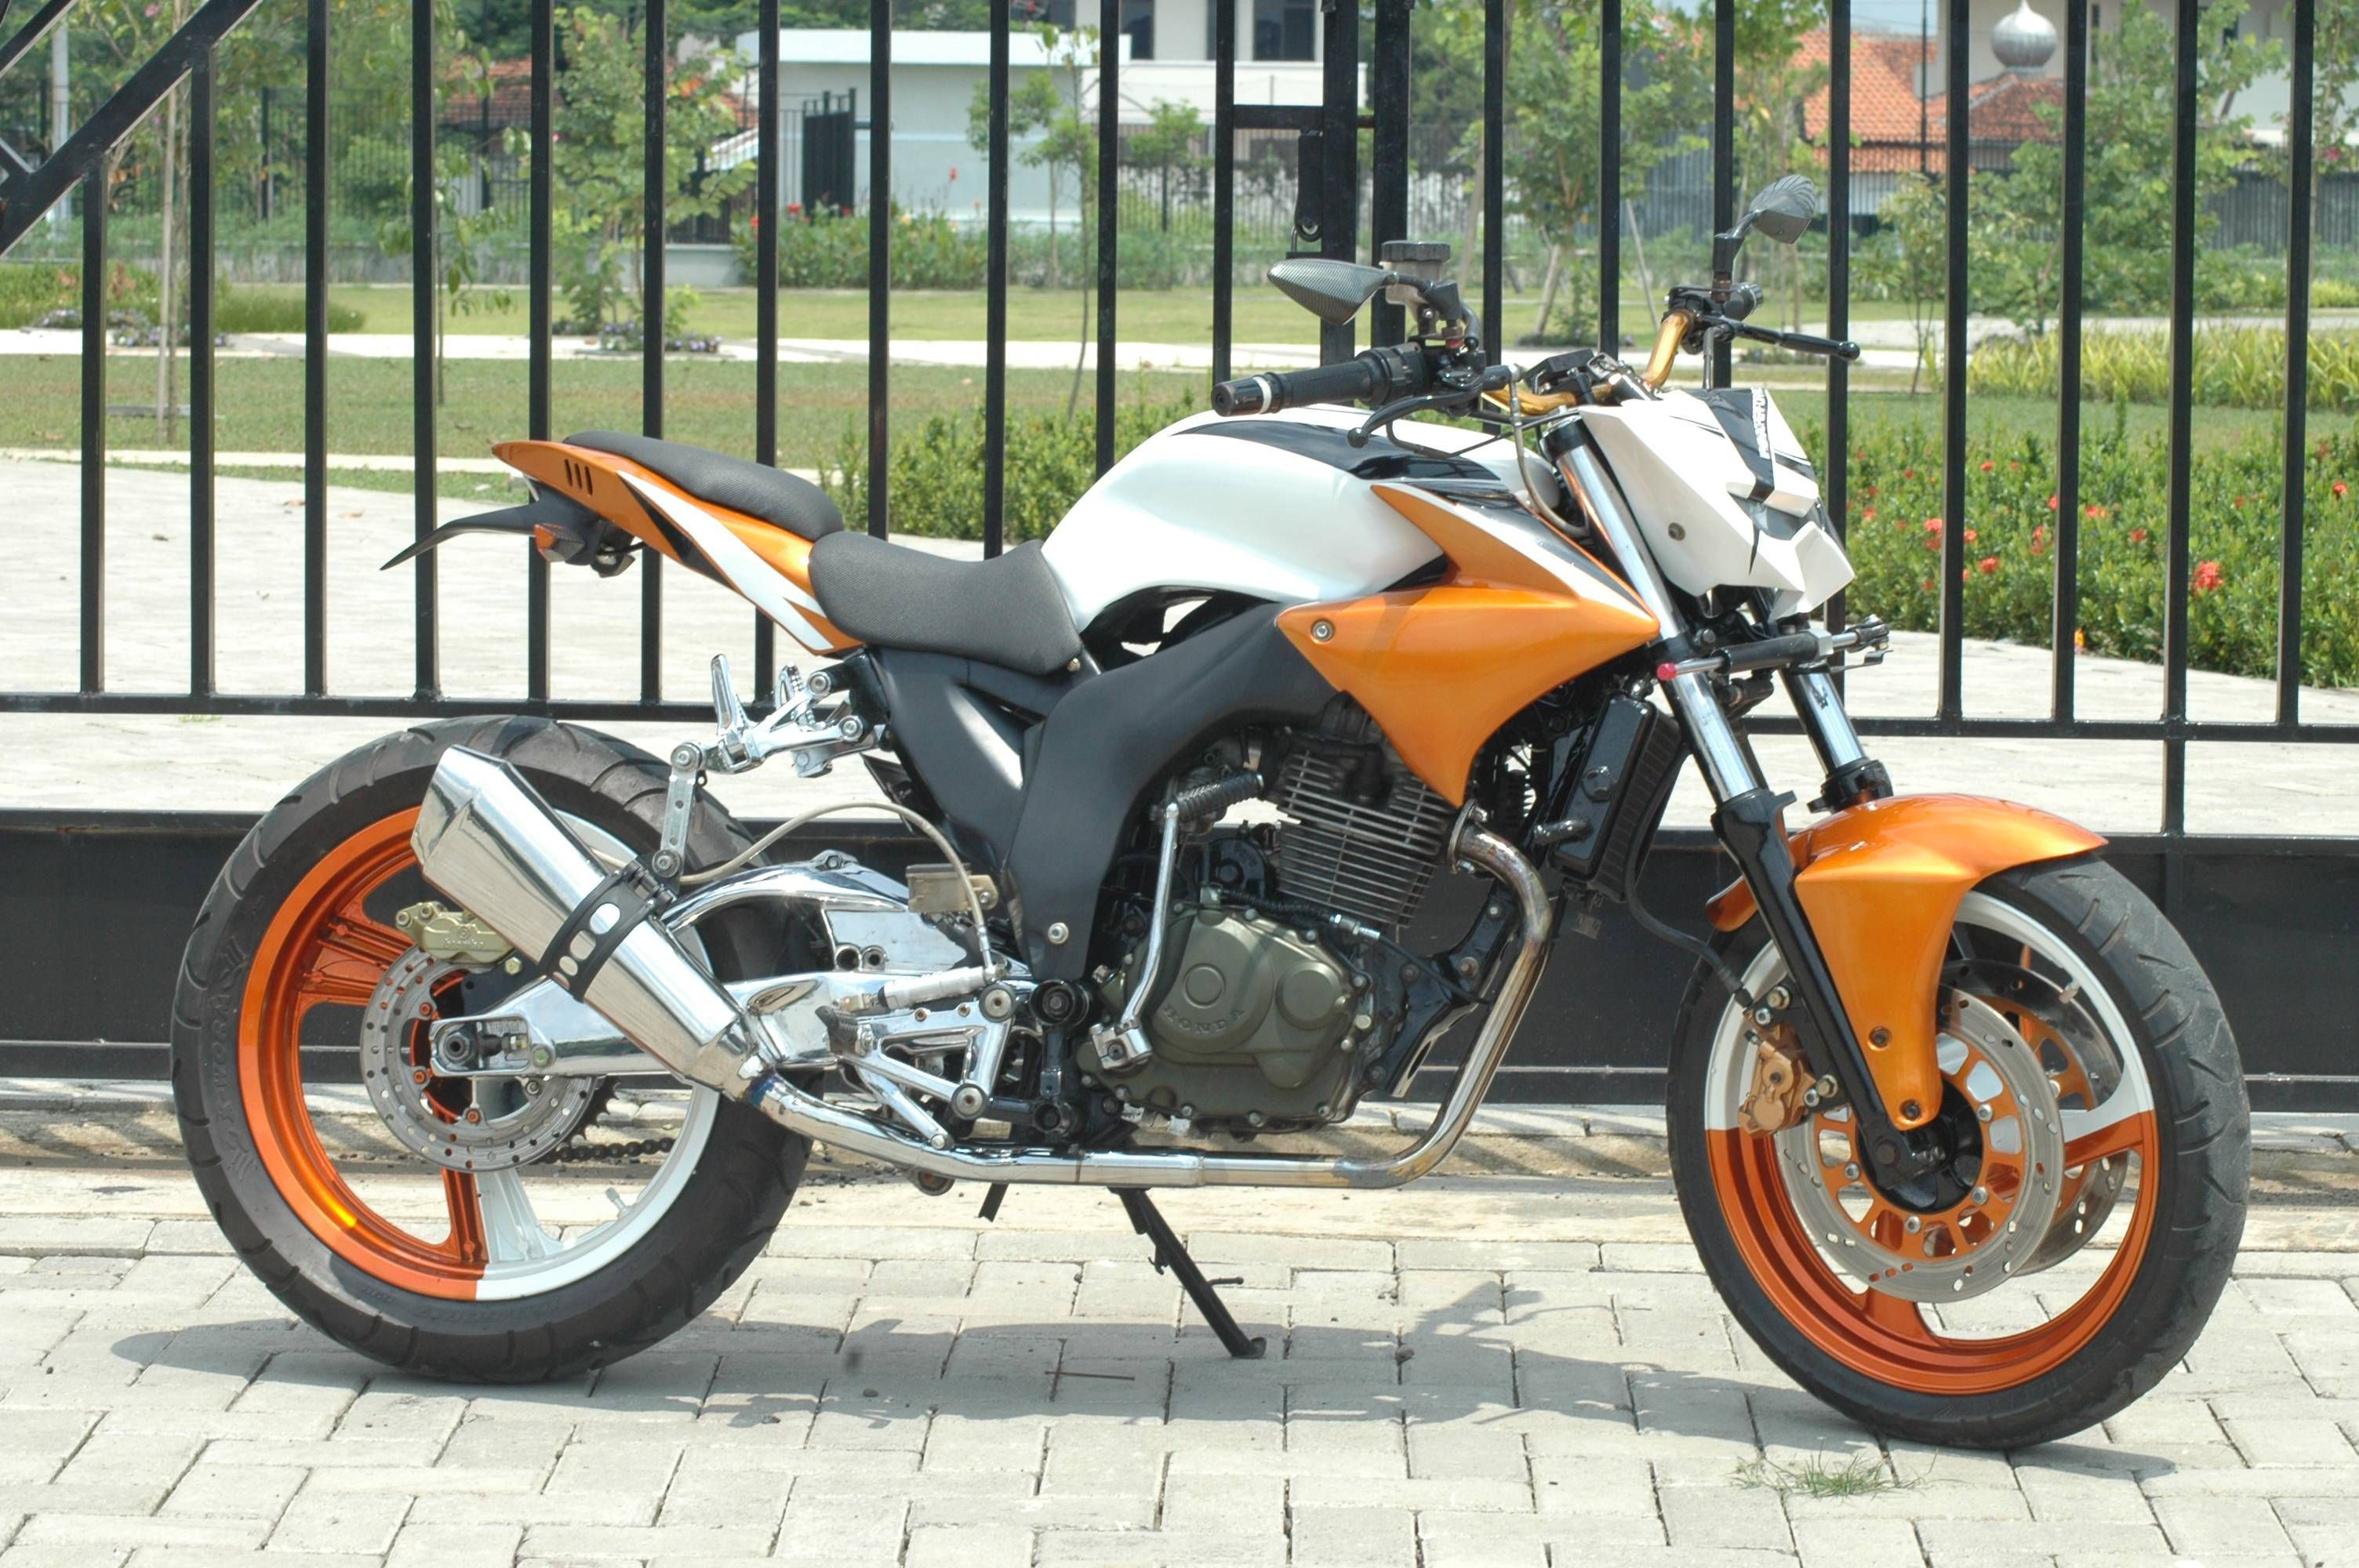 Honda Tiger Modif Streetfighter Metroseksual Modifikasi Motor